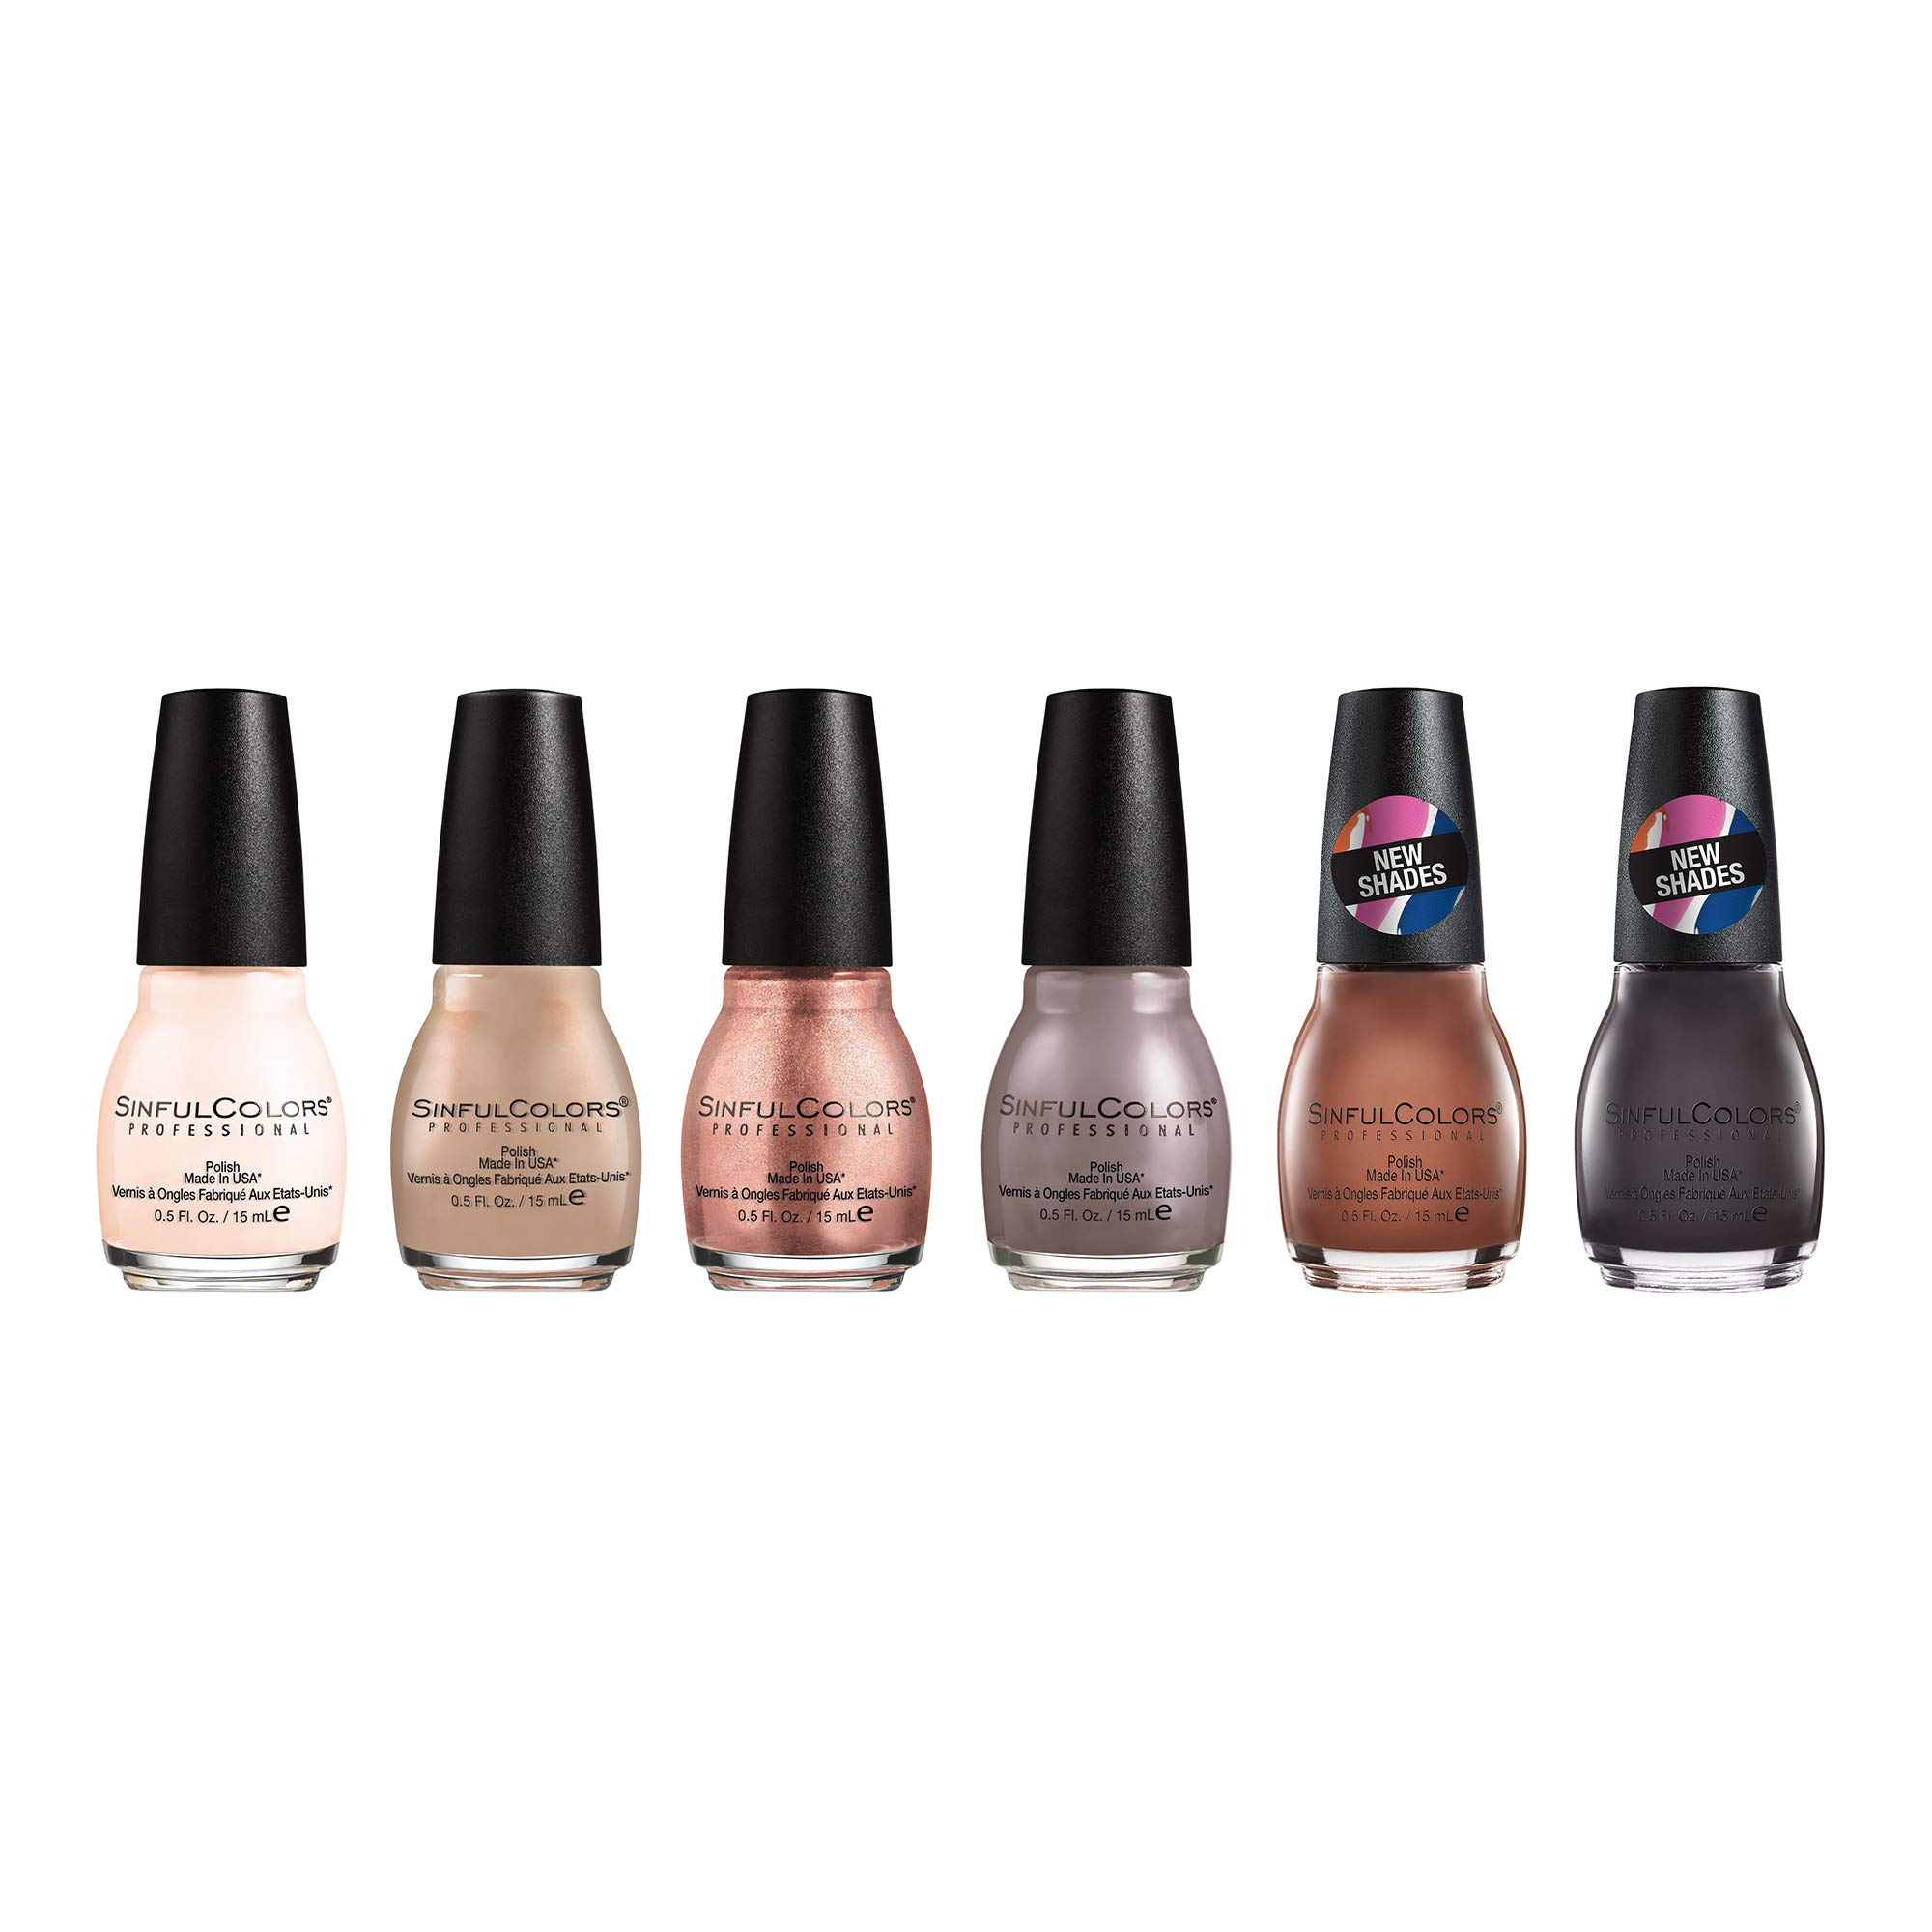 SinfulColors Nude Nail Polish Collection, 6 Count (Easy Going, Coco Bae, Hush Money, Hot Toffee, Taupe is Dope, Street Legal) by SinfulColors